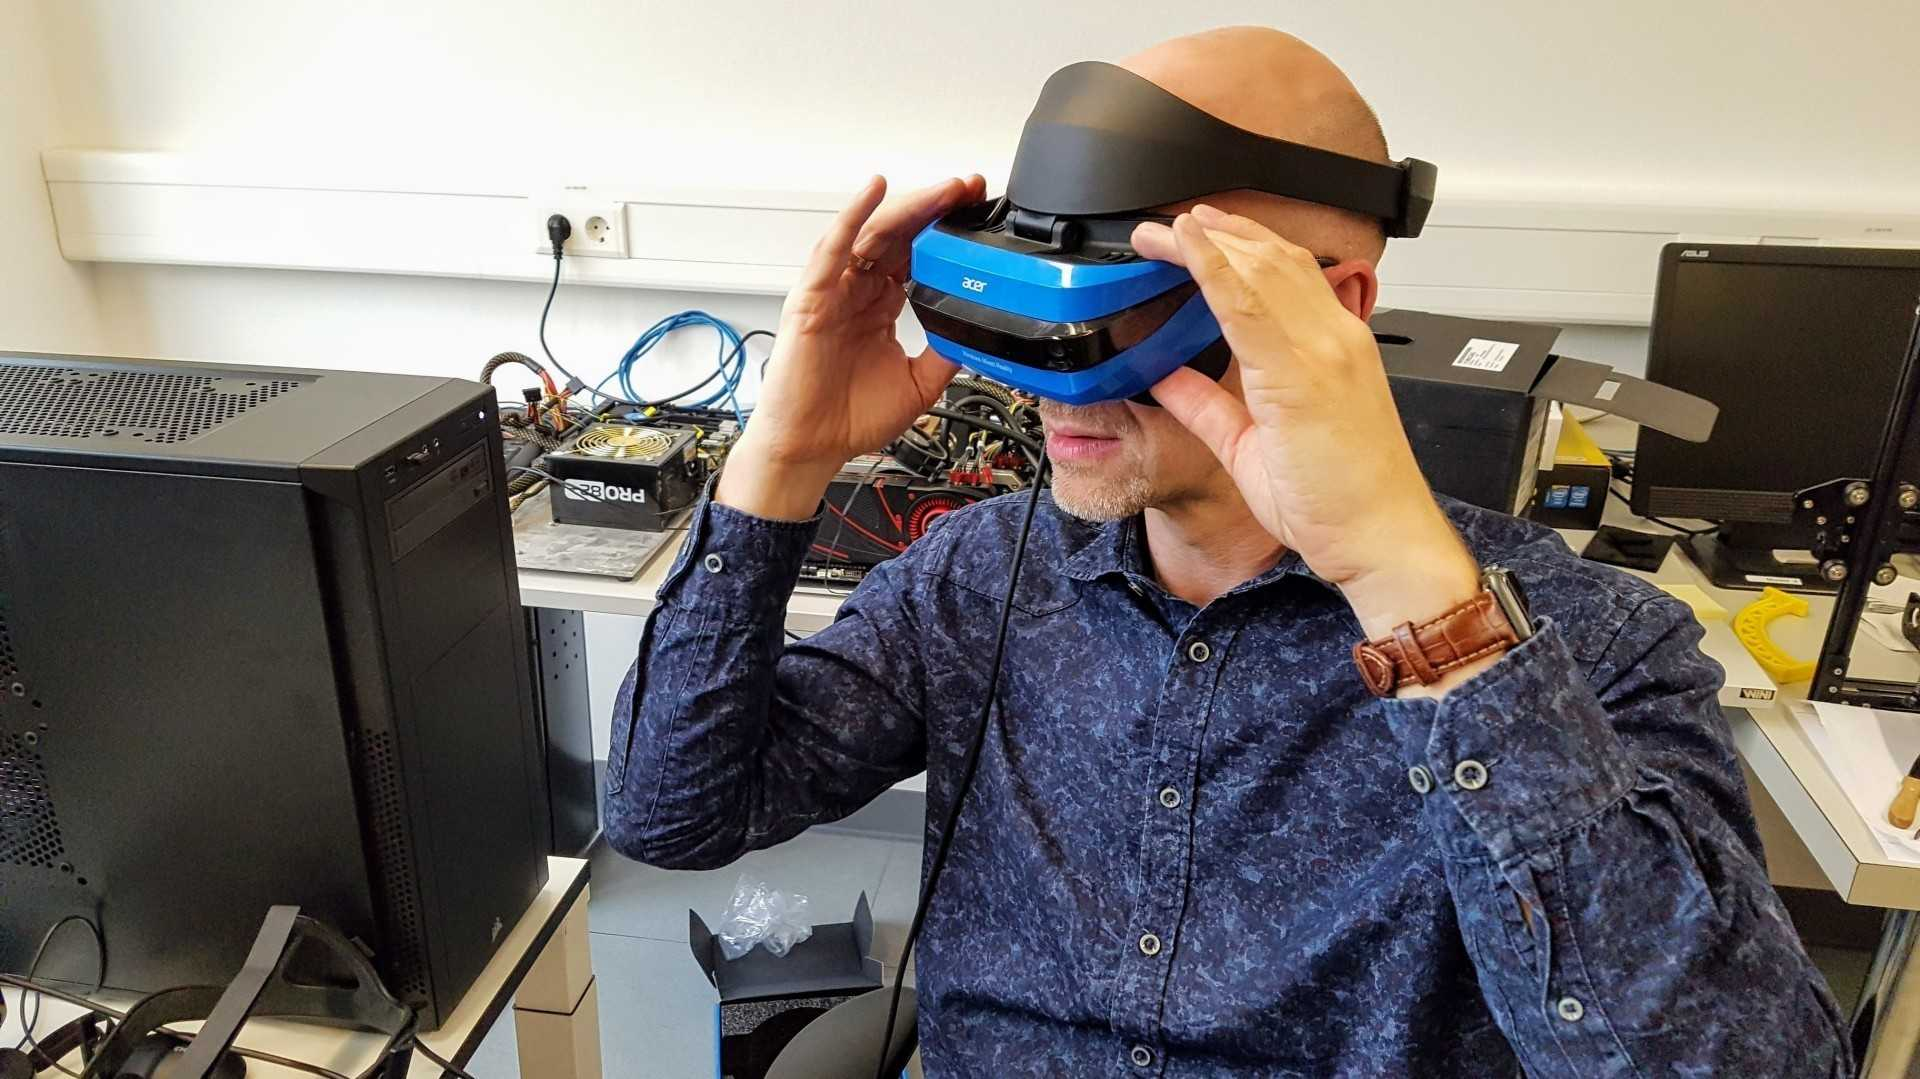 Kurztest: Windows Mixed Reality überzeugt, Start mit 16 VR-Titeln